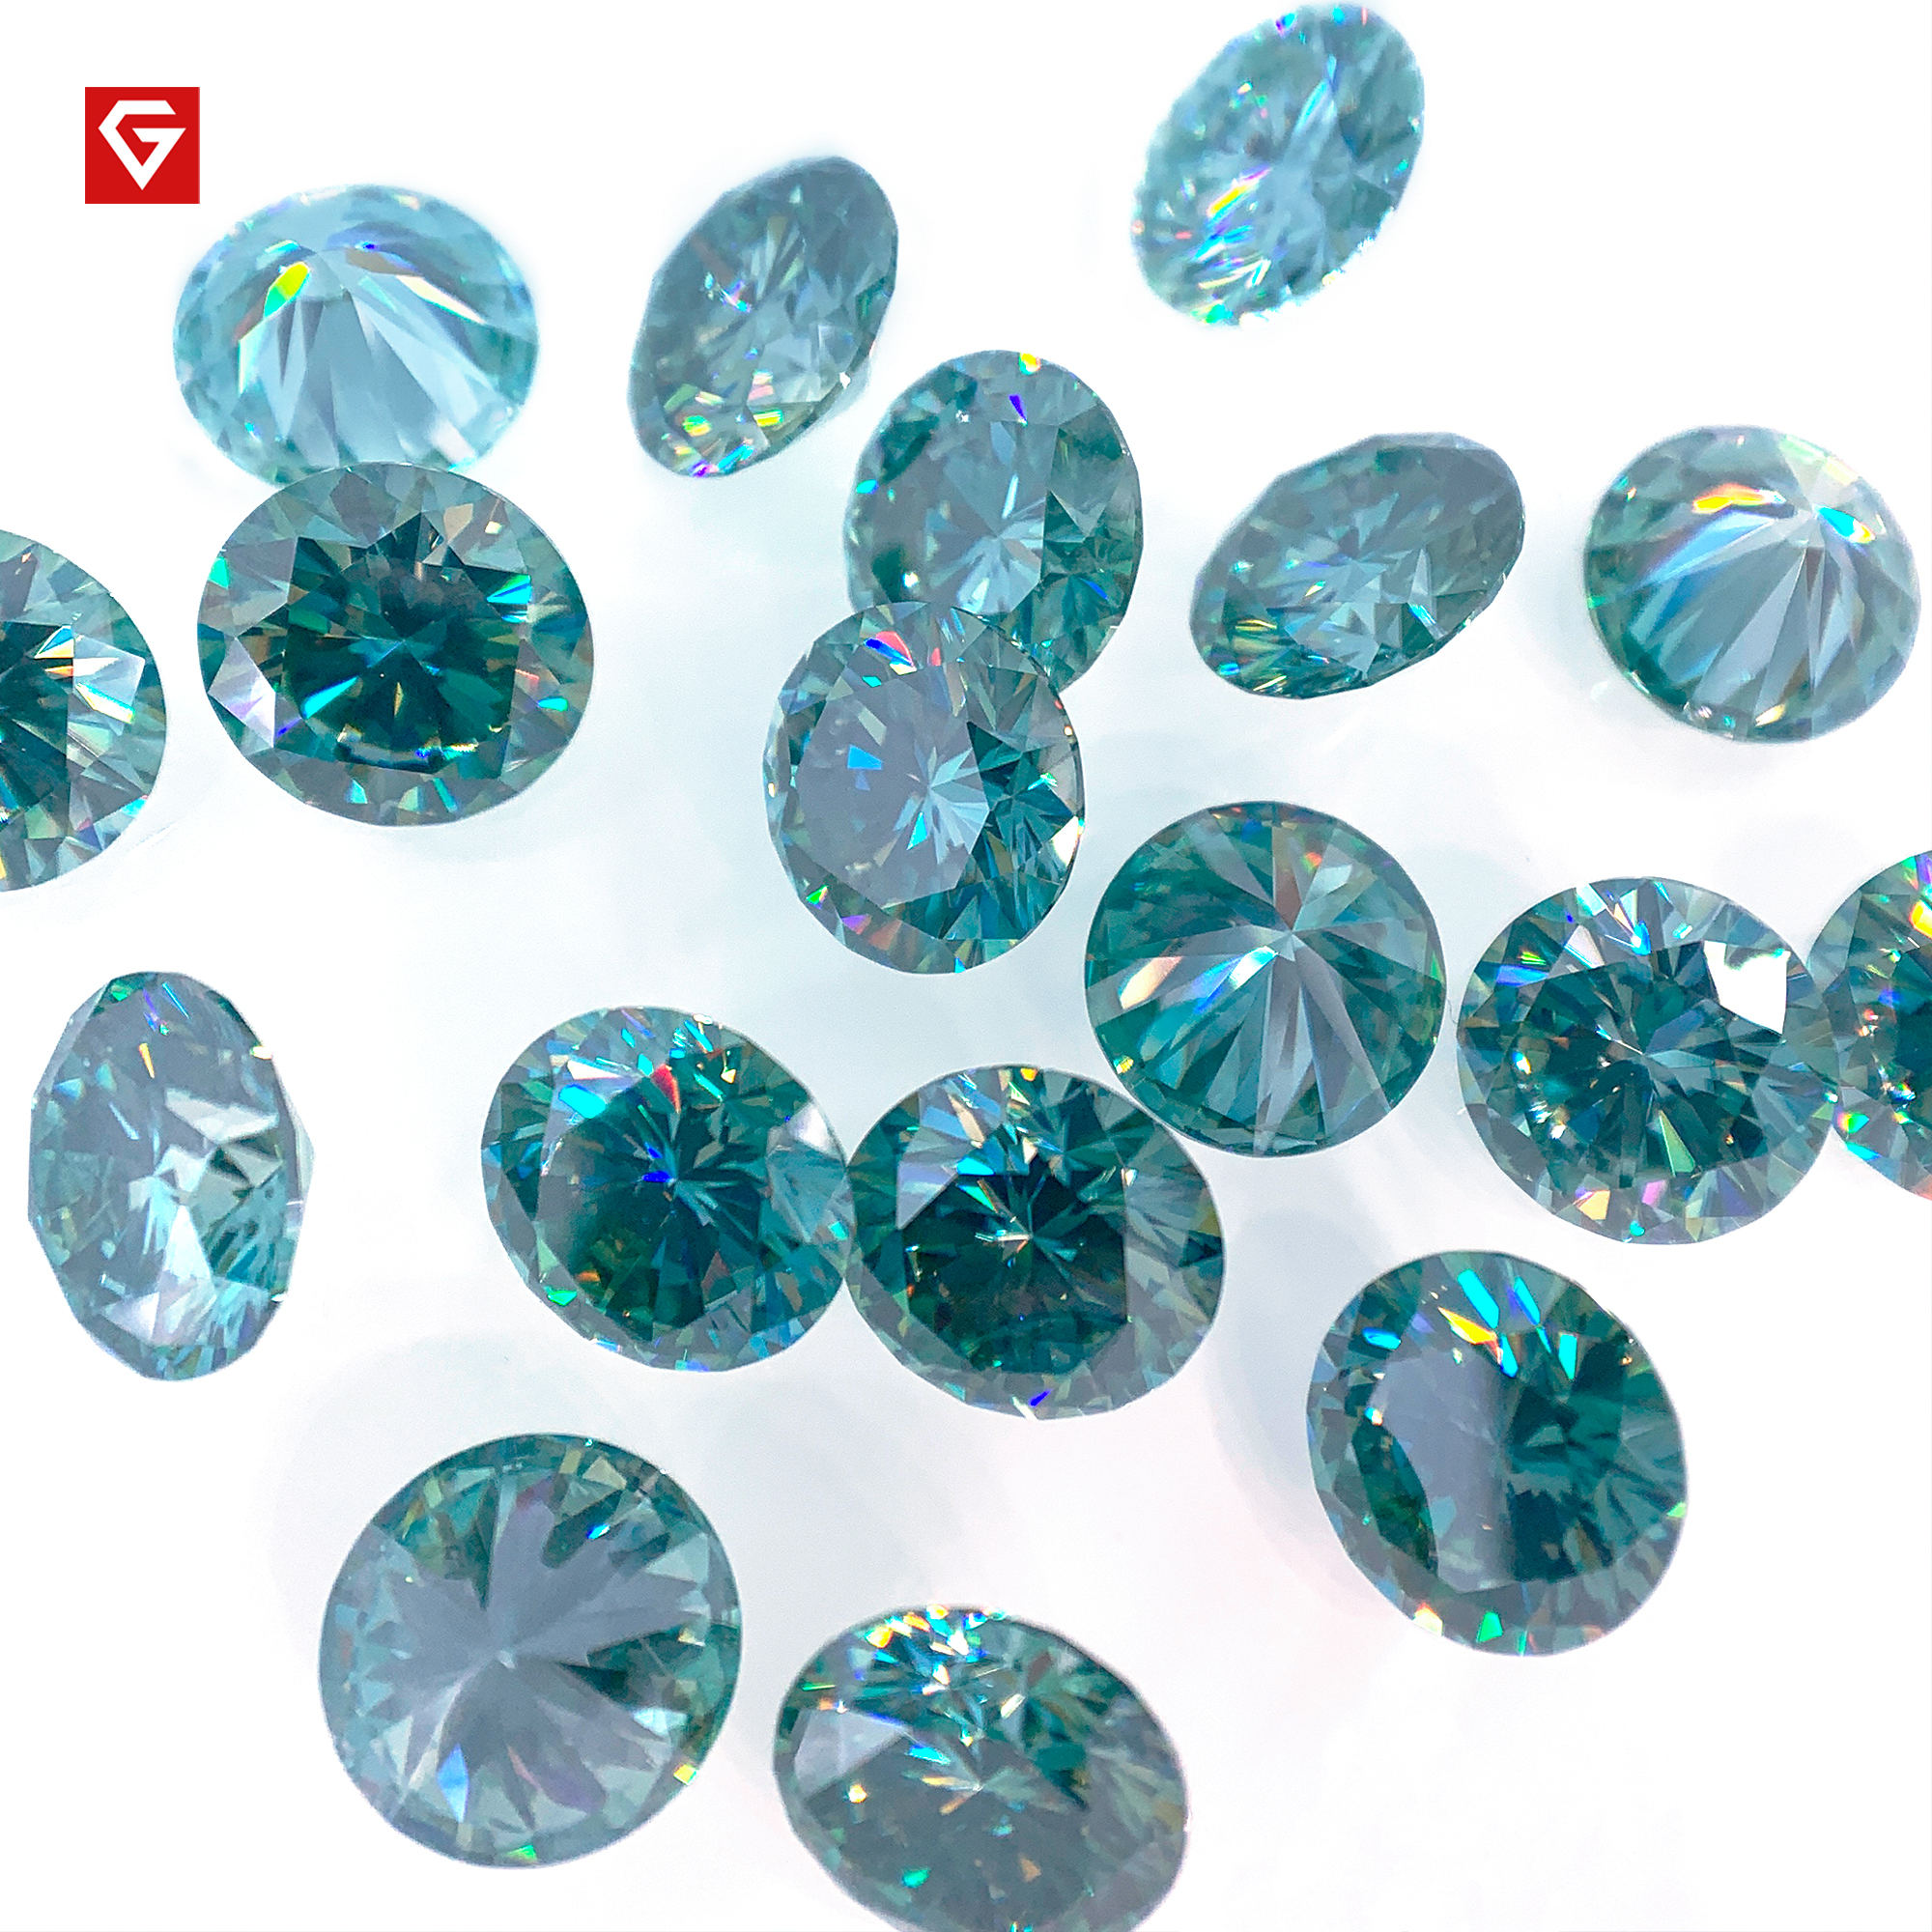 GIGAJEWE Wholesales Loose 6.5mm 1ct Round Cut Cyan Blue Green Colored For Making Jewelry Moissanite Diamonds